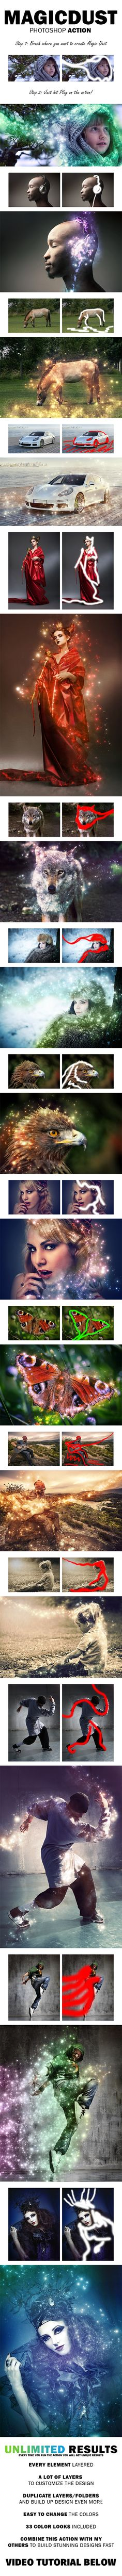 Buy MagicDust Photoshop Action by UnicDesign on GraphicRiver. MagicDust Photoshop Action Add sparkle effect to your photos with no work at all! Effects Photoshop, Photoshop Tutorial, Photoshop Actions, Lightroom, Adobe Photoshop, Photoshop Express, Photoshop Design, Photoshop Elements, Photoshop Photography